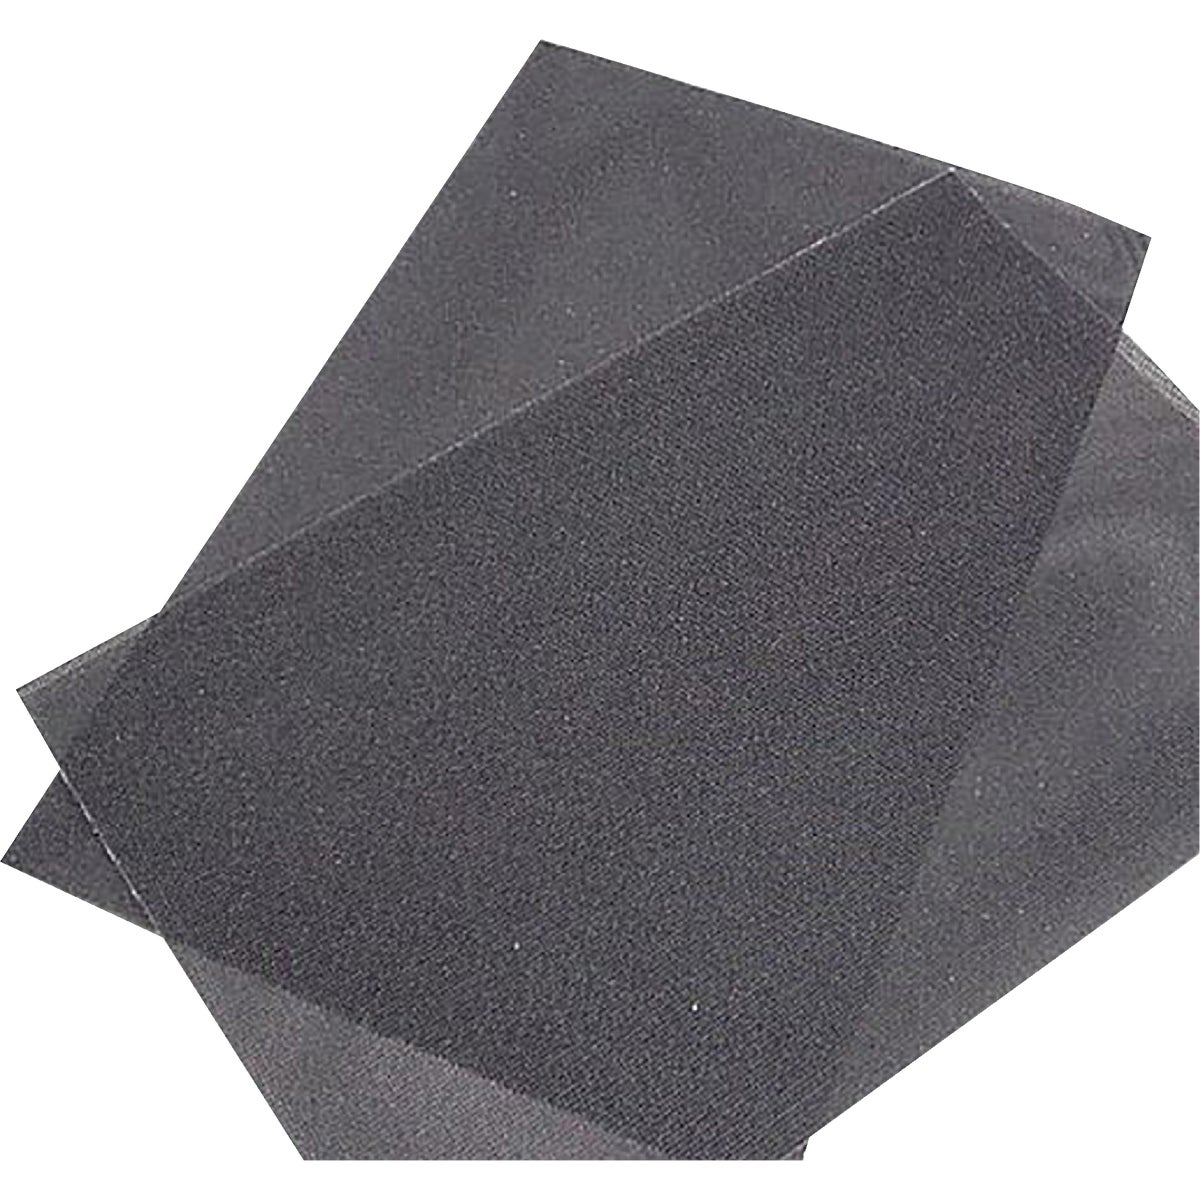 12X18 150G SANDNG SCREEN - 414-824498 by Virginia Abrasives